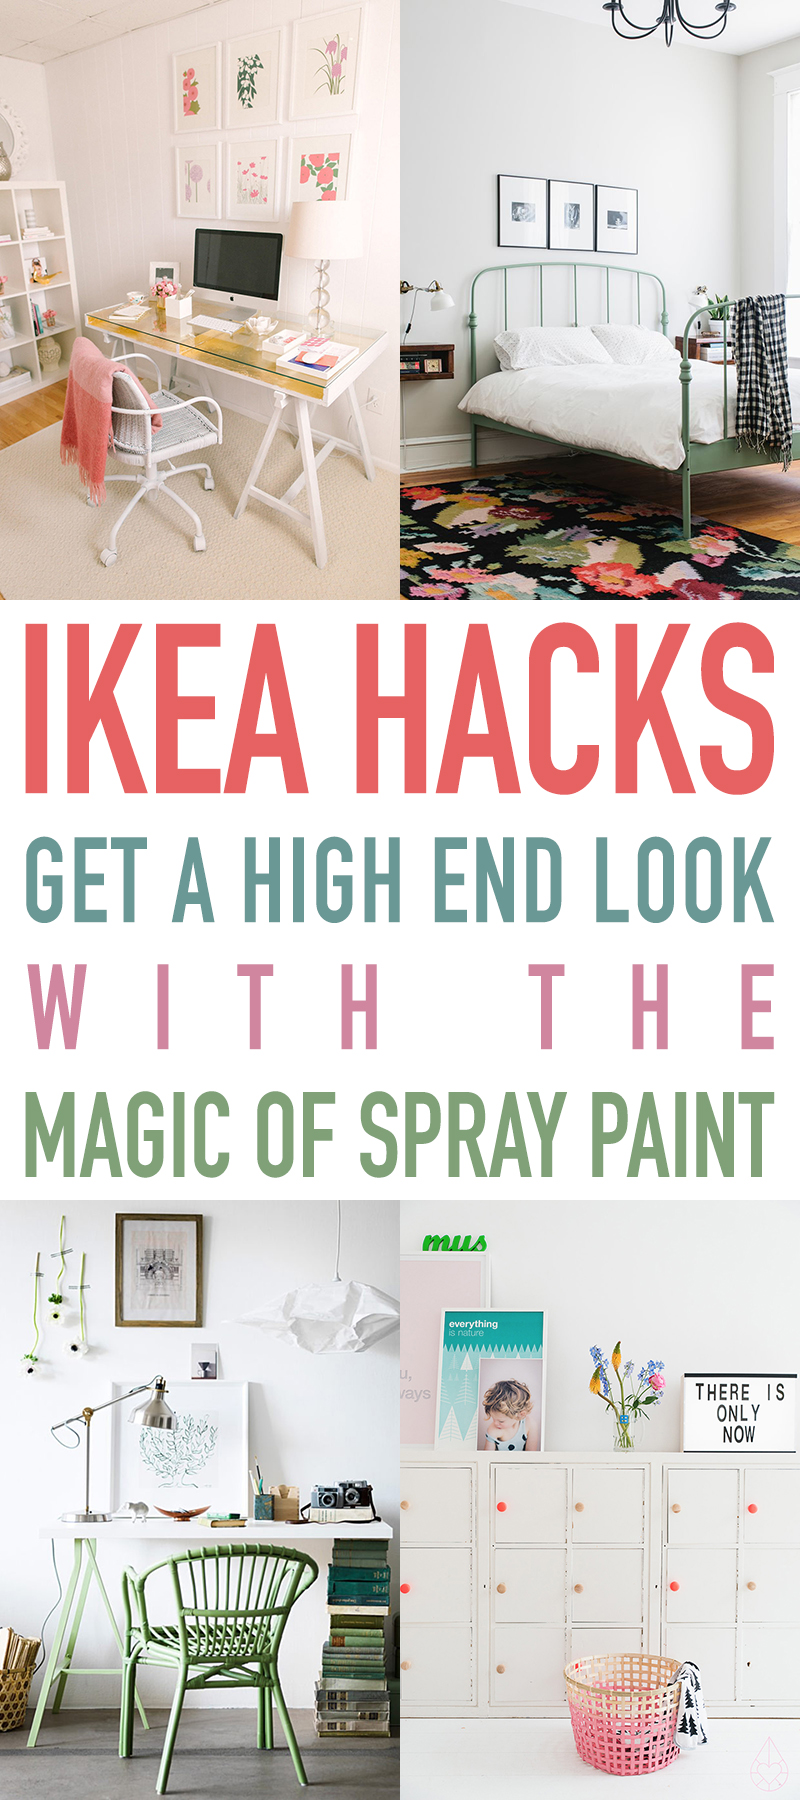 IKEA Hacks get a High End Look with the Magic of Spray Paint